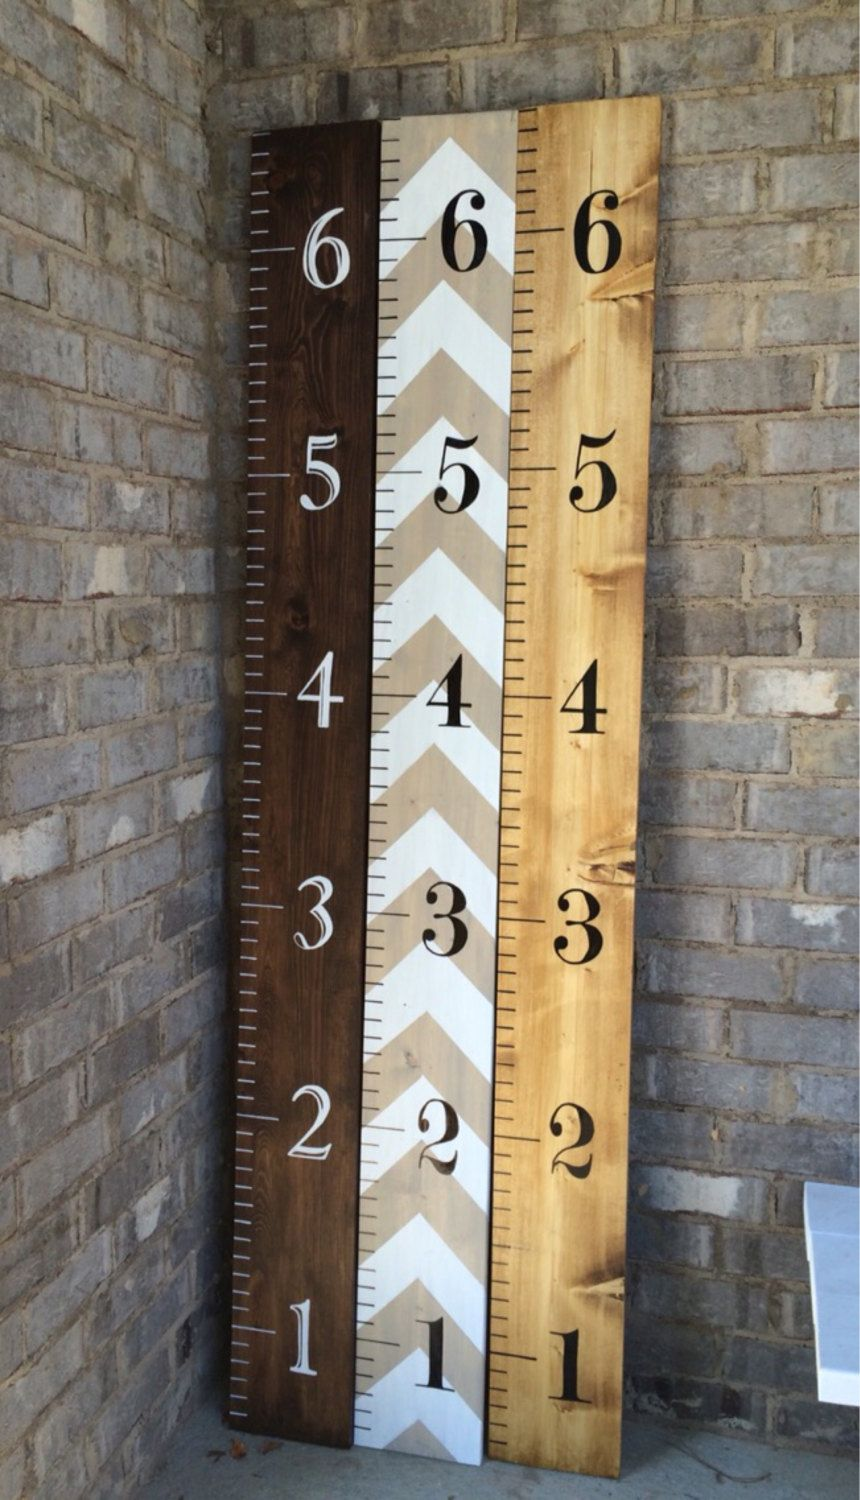 Growth chart ruler by theloveleehome on etsy avery pinterest hand painted wooden growth chart ruler to hang on the wall the ruler measures is the middle chevron one what you were talking about doing geenschuldenfo Choice Image